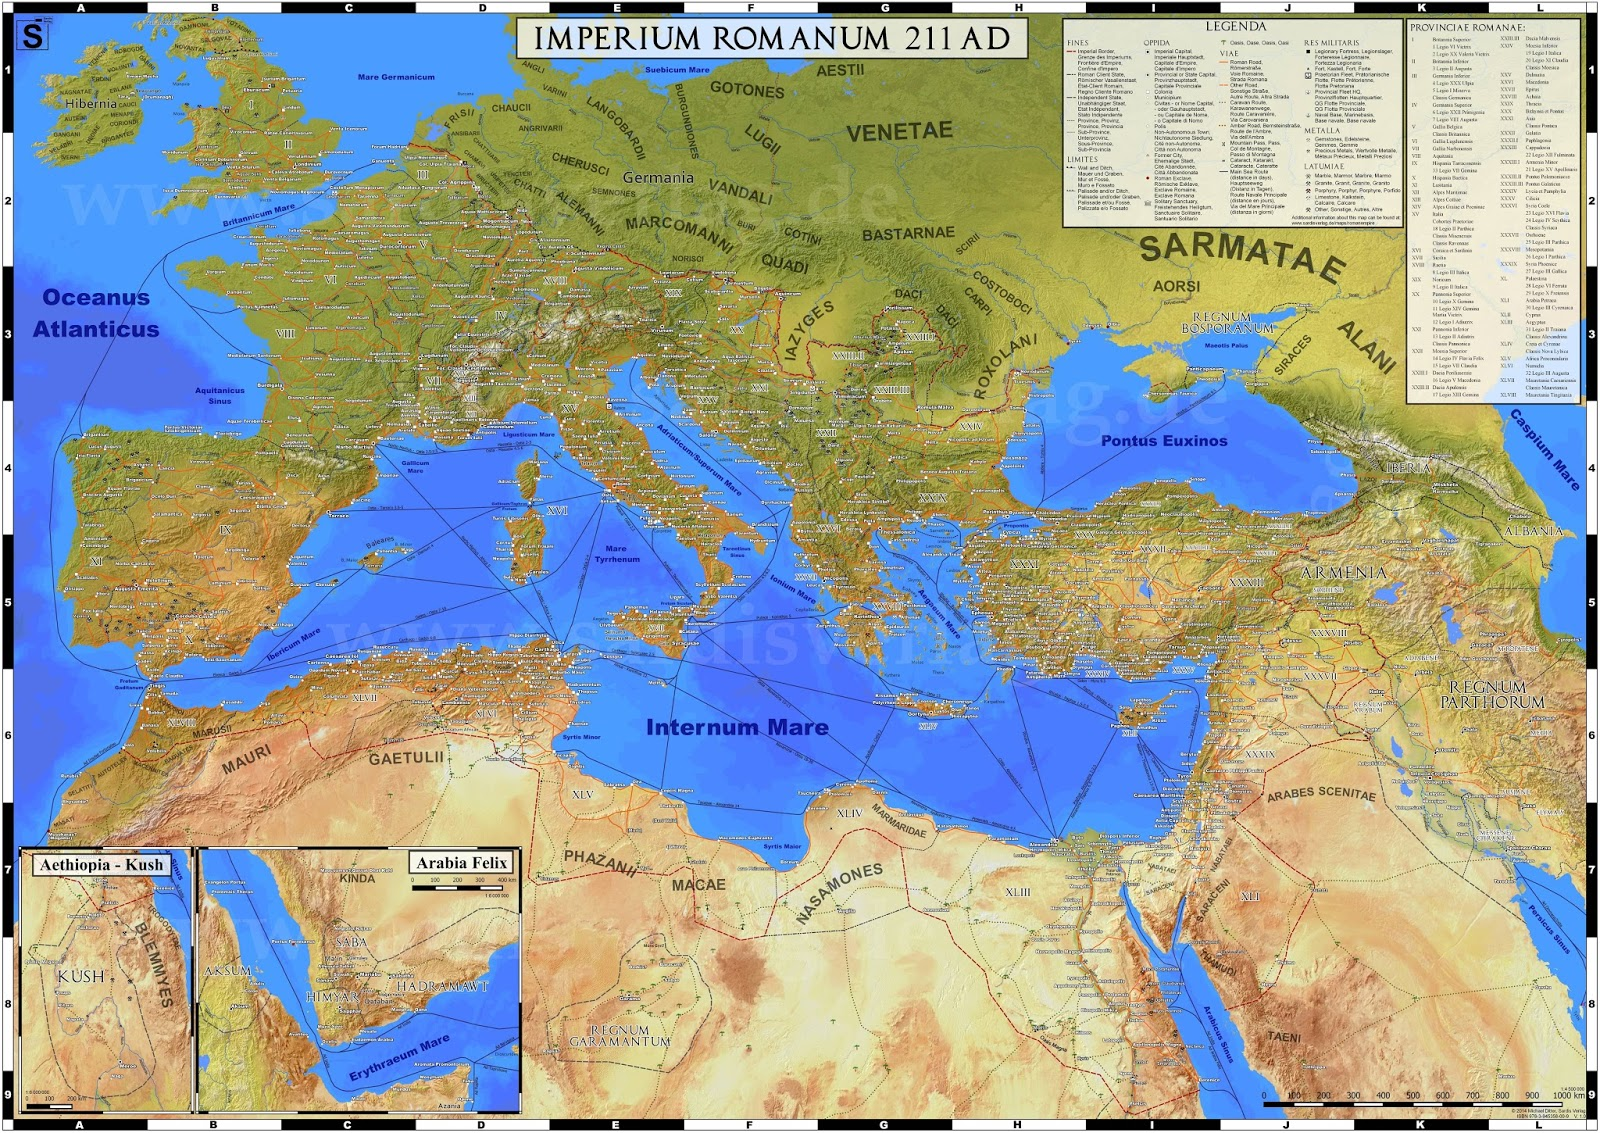 Detailed map of the Roman Empire (211 CE)